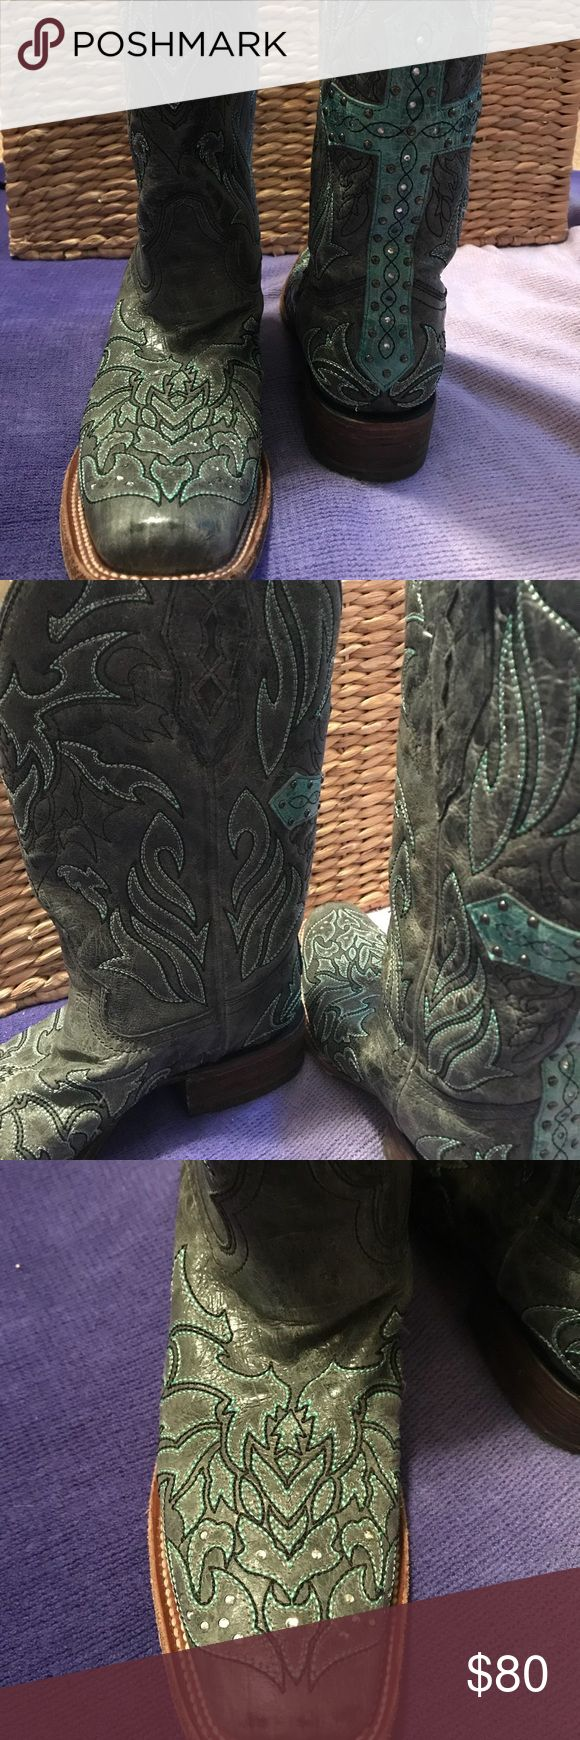 BEAUTIFUL vintage coral cowboy boots These are stunning! Turquoise Vintage coral boots! Large cross on the back of both boots. Calf shaft is 12 inches from top to bottoms. Worn maybe 3 times! These are perfect! Size 9 1/2 Corral Shoes